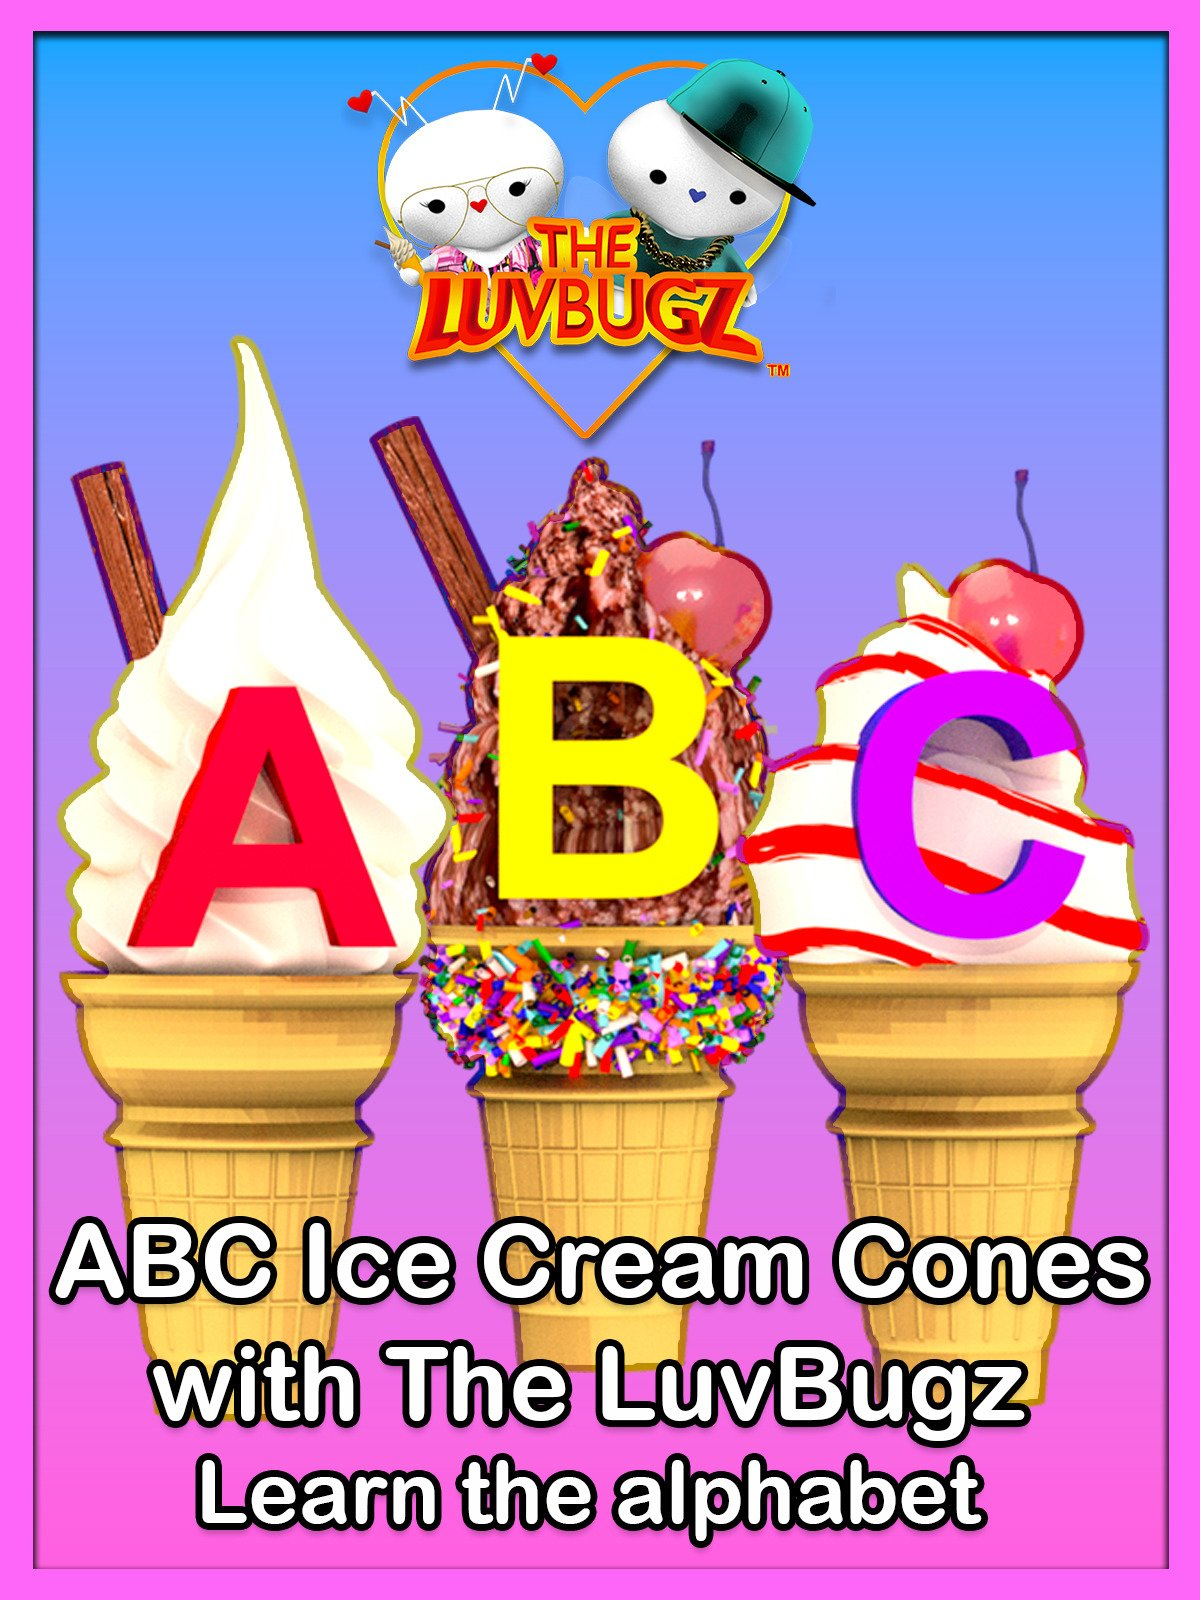 ABC Ice Cream Cones with The LuvBugz Learn the Alphabet